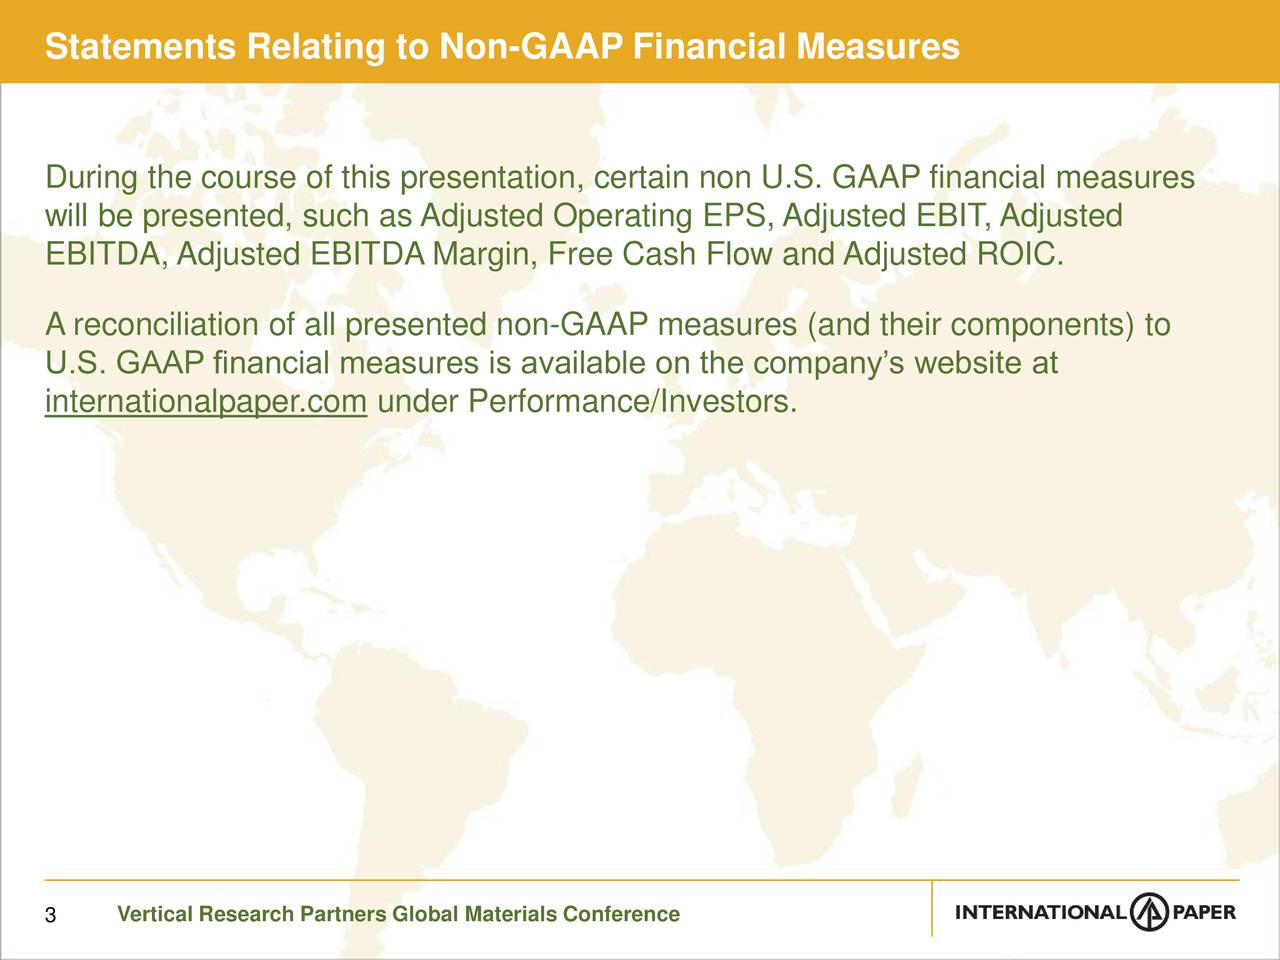 During the course of this presentation, certain non U.S. GAAP financial measures will be presented, such as Adjusted Operating EPS, Adjusted EBIT, Adjusted EBITDA, Adjusted EBITDA Margin, Free Cash Flow and Adjusted ROIC. A reconciliation of all presented non-GAAP measures (and their components) to U.S. GAAP financial measures is available on the companys website at internationalpaper.com under Performance/Investors. 3 Vertical Research Partners Global Materials Conference